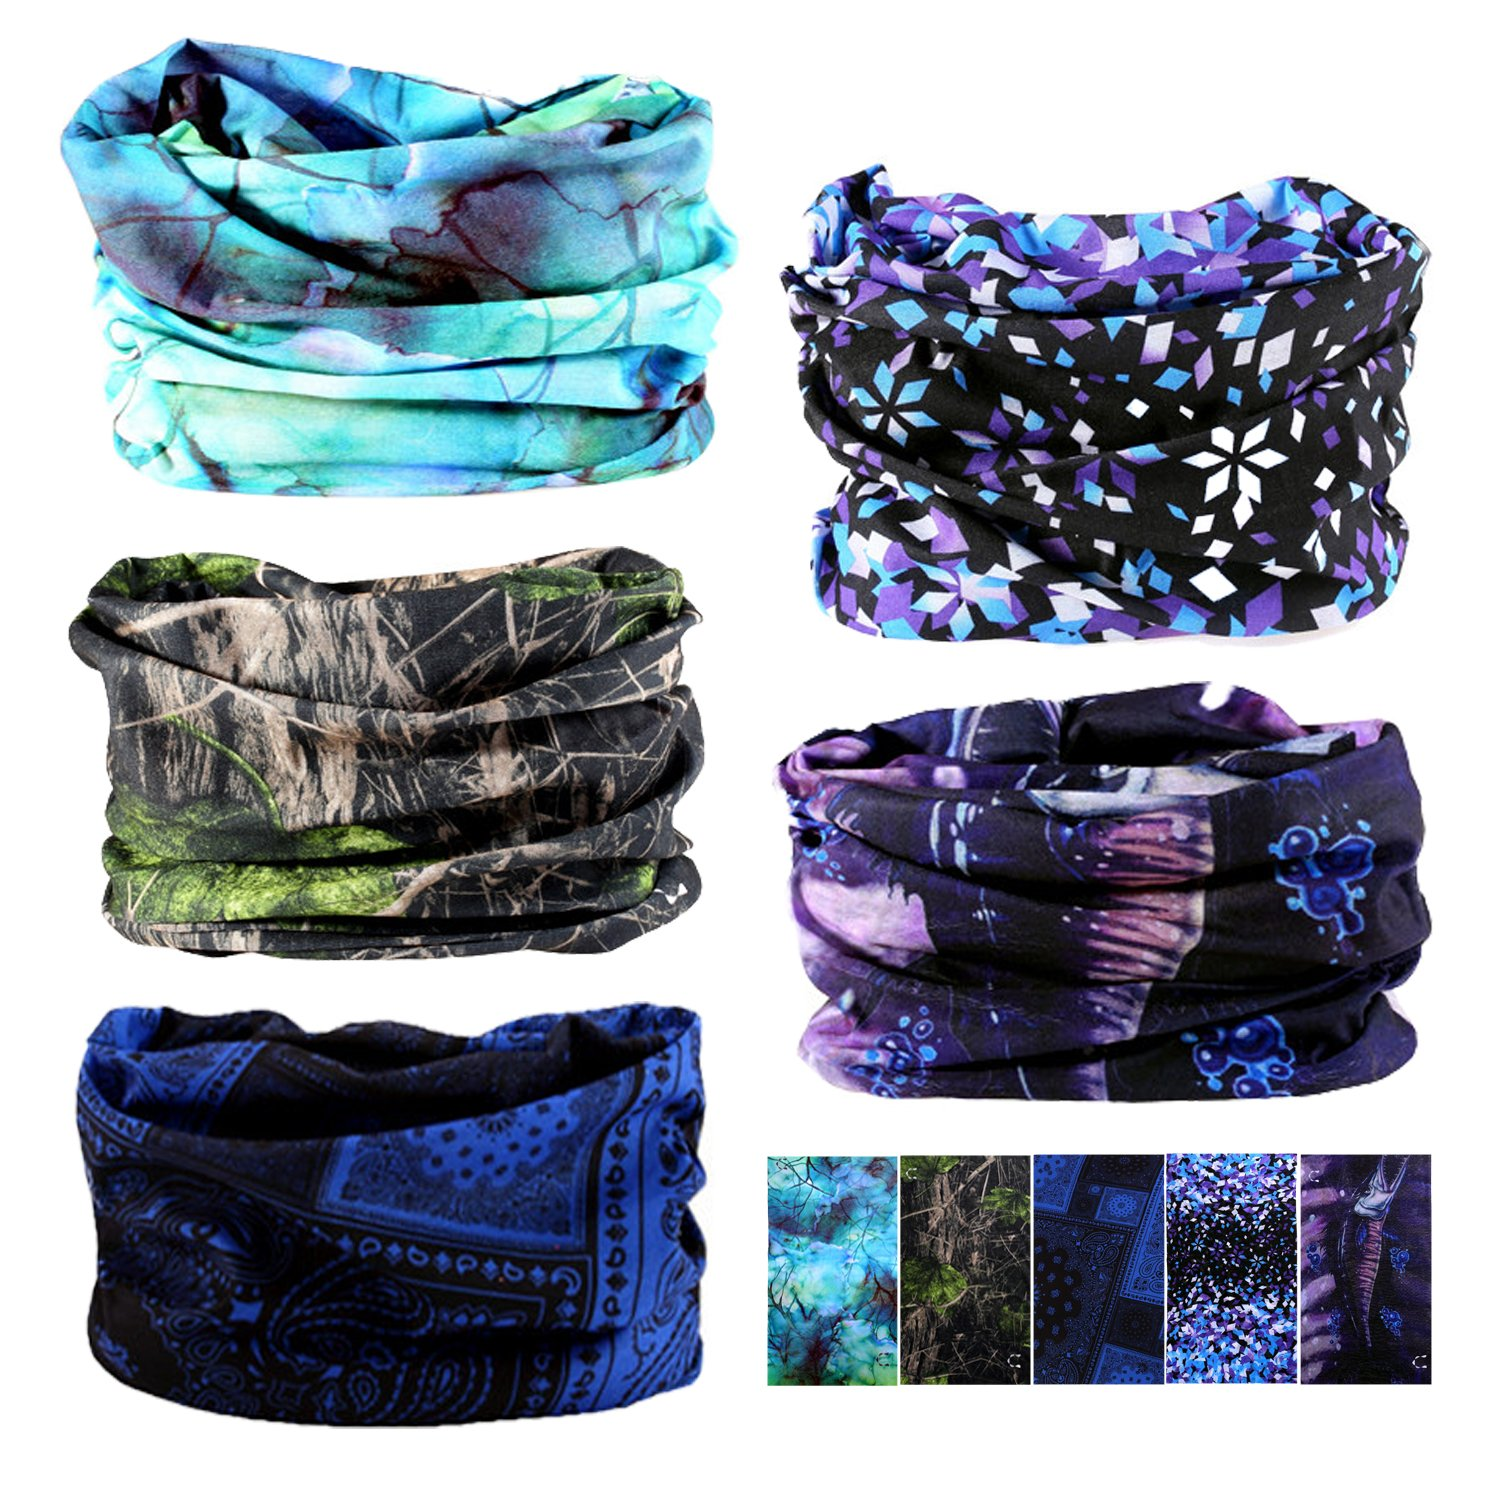 Black series-9pcs Oureamod Wide Headbands for Men and Women Athletic Moisture Wicking Headwear for Sports,Workout,Yoga Multi Function Yoga Multi Function TOUJ1005